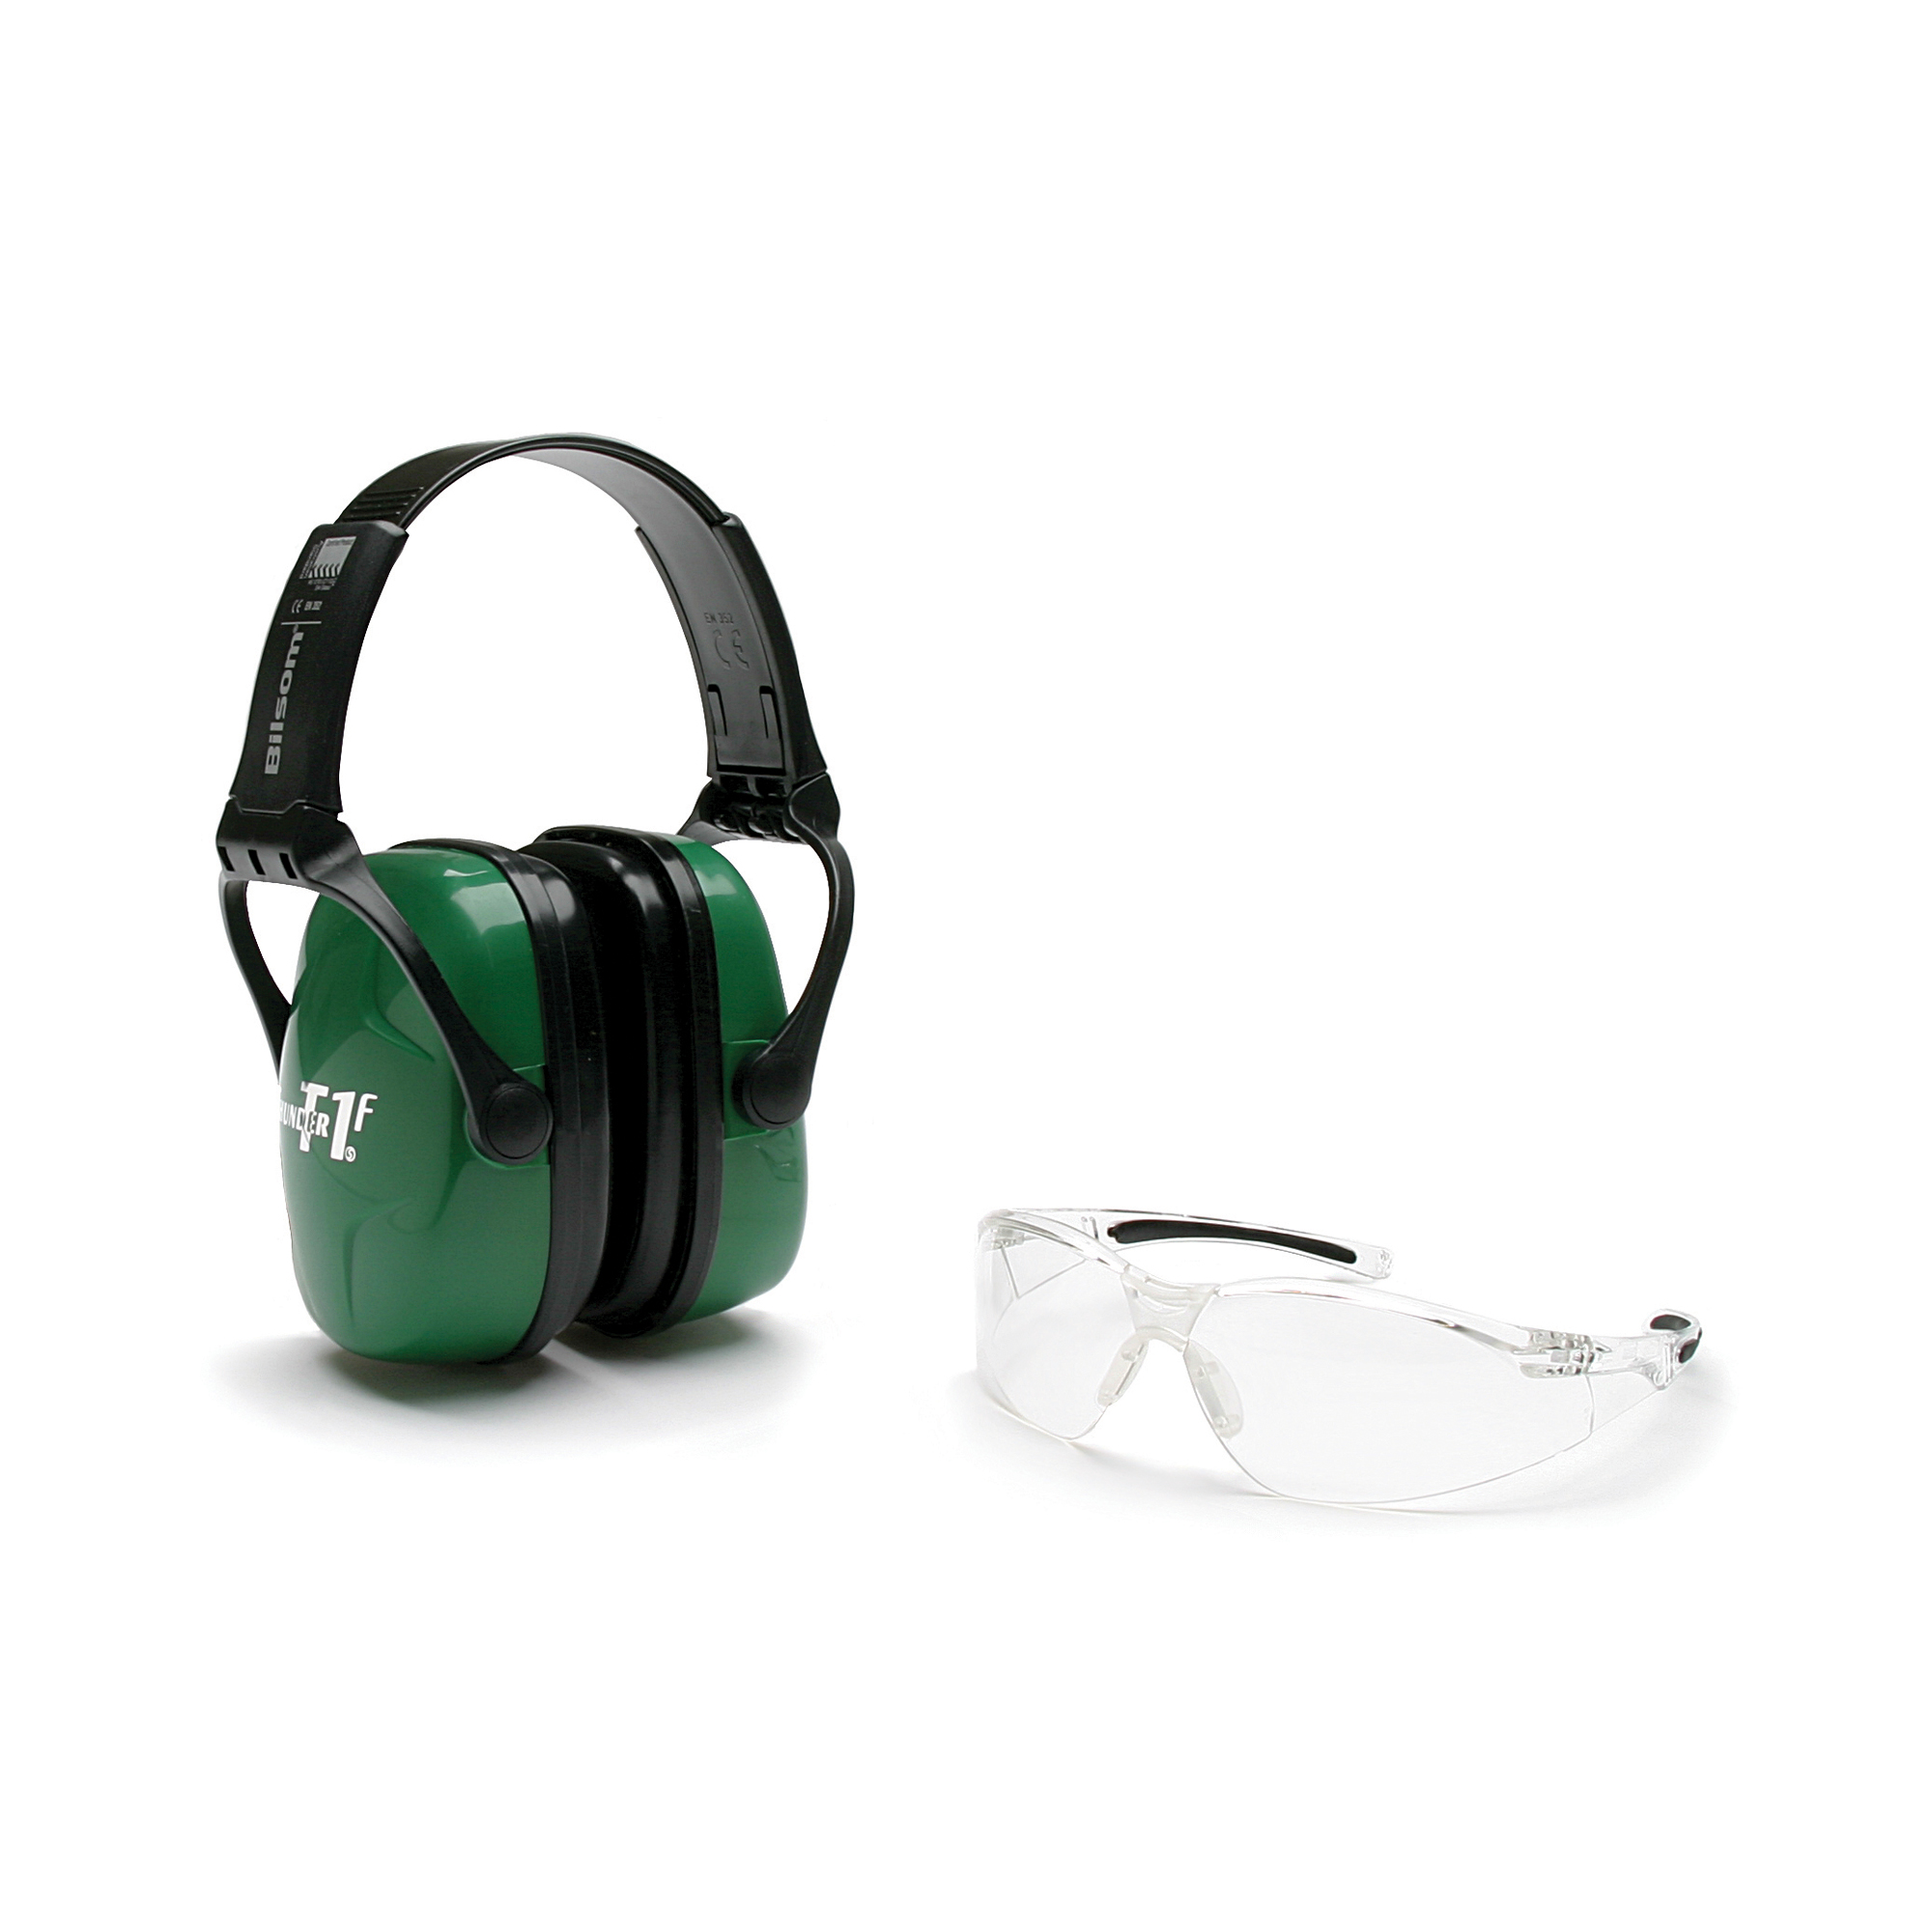 This kit includes both hearing and eye protection. The Glasses meet Z287+Impact standards and the earmuffs are CE certified and have a noise reduction rating of 25.